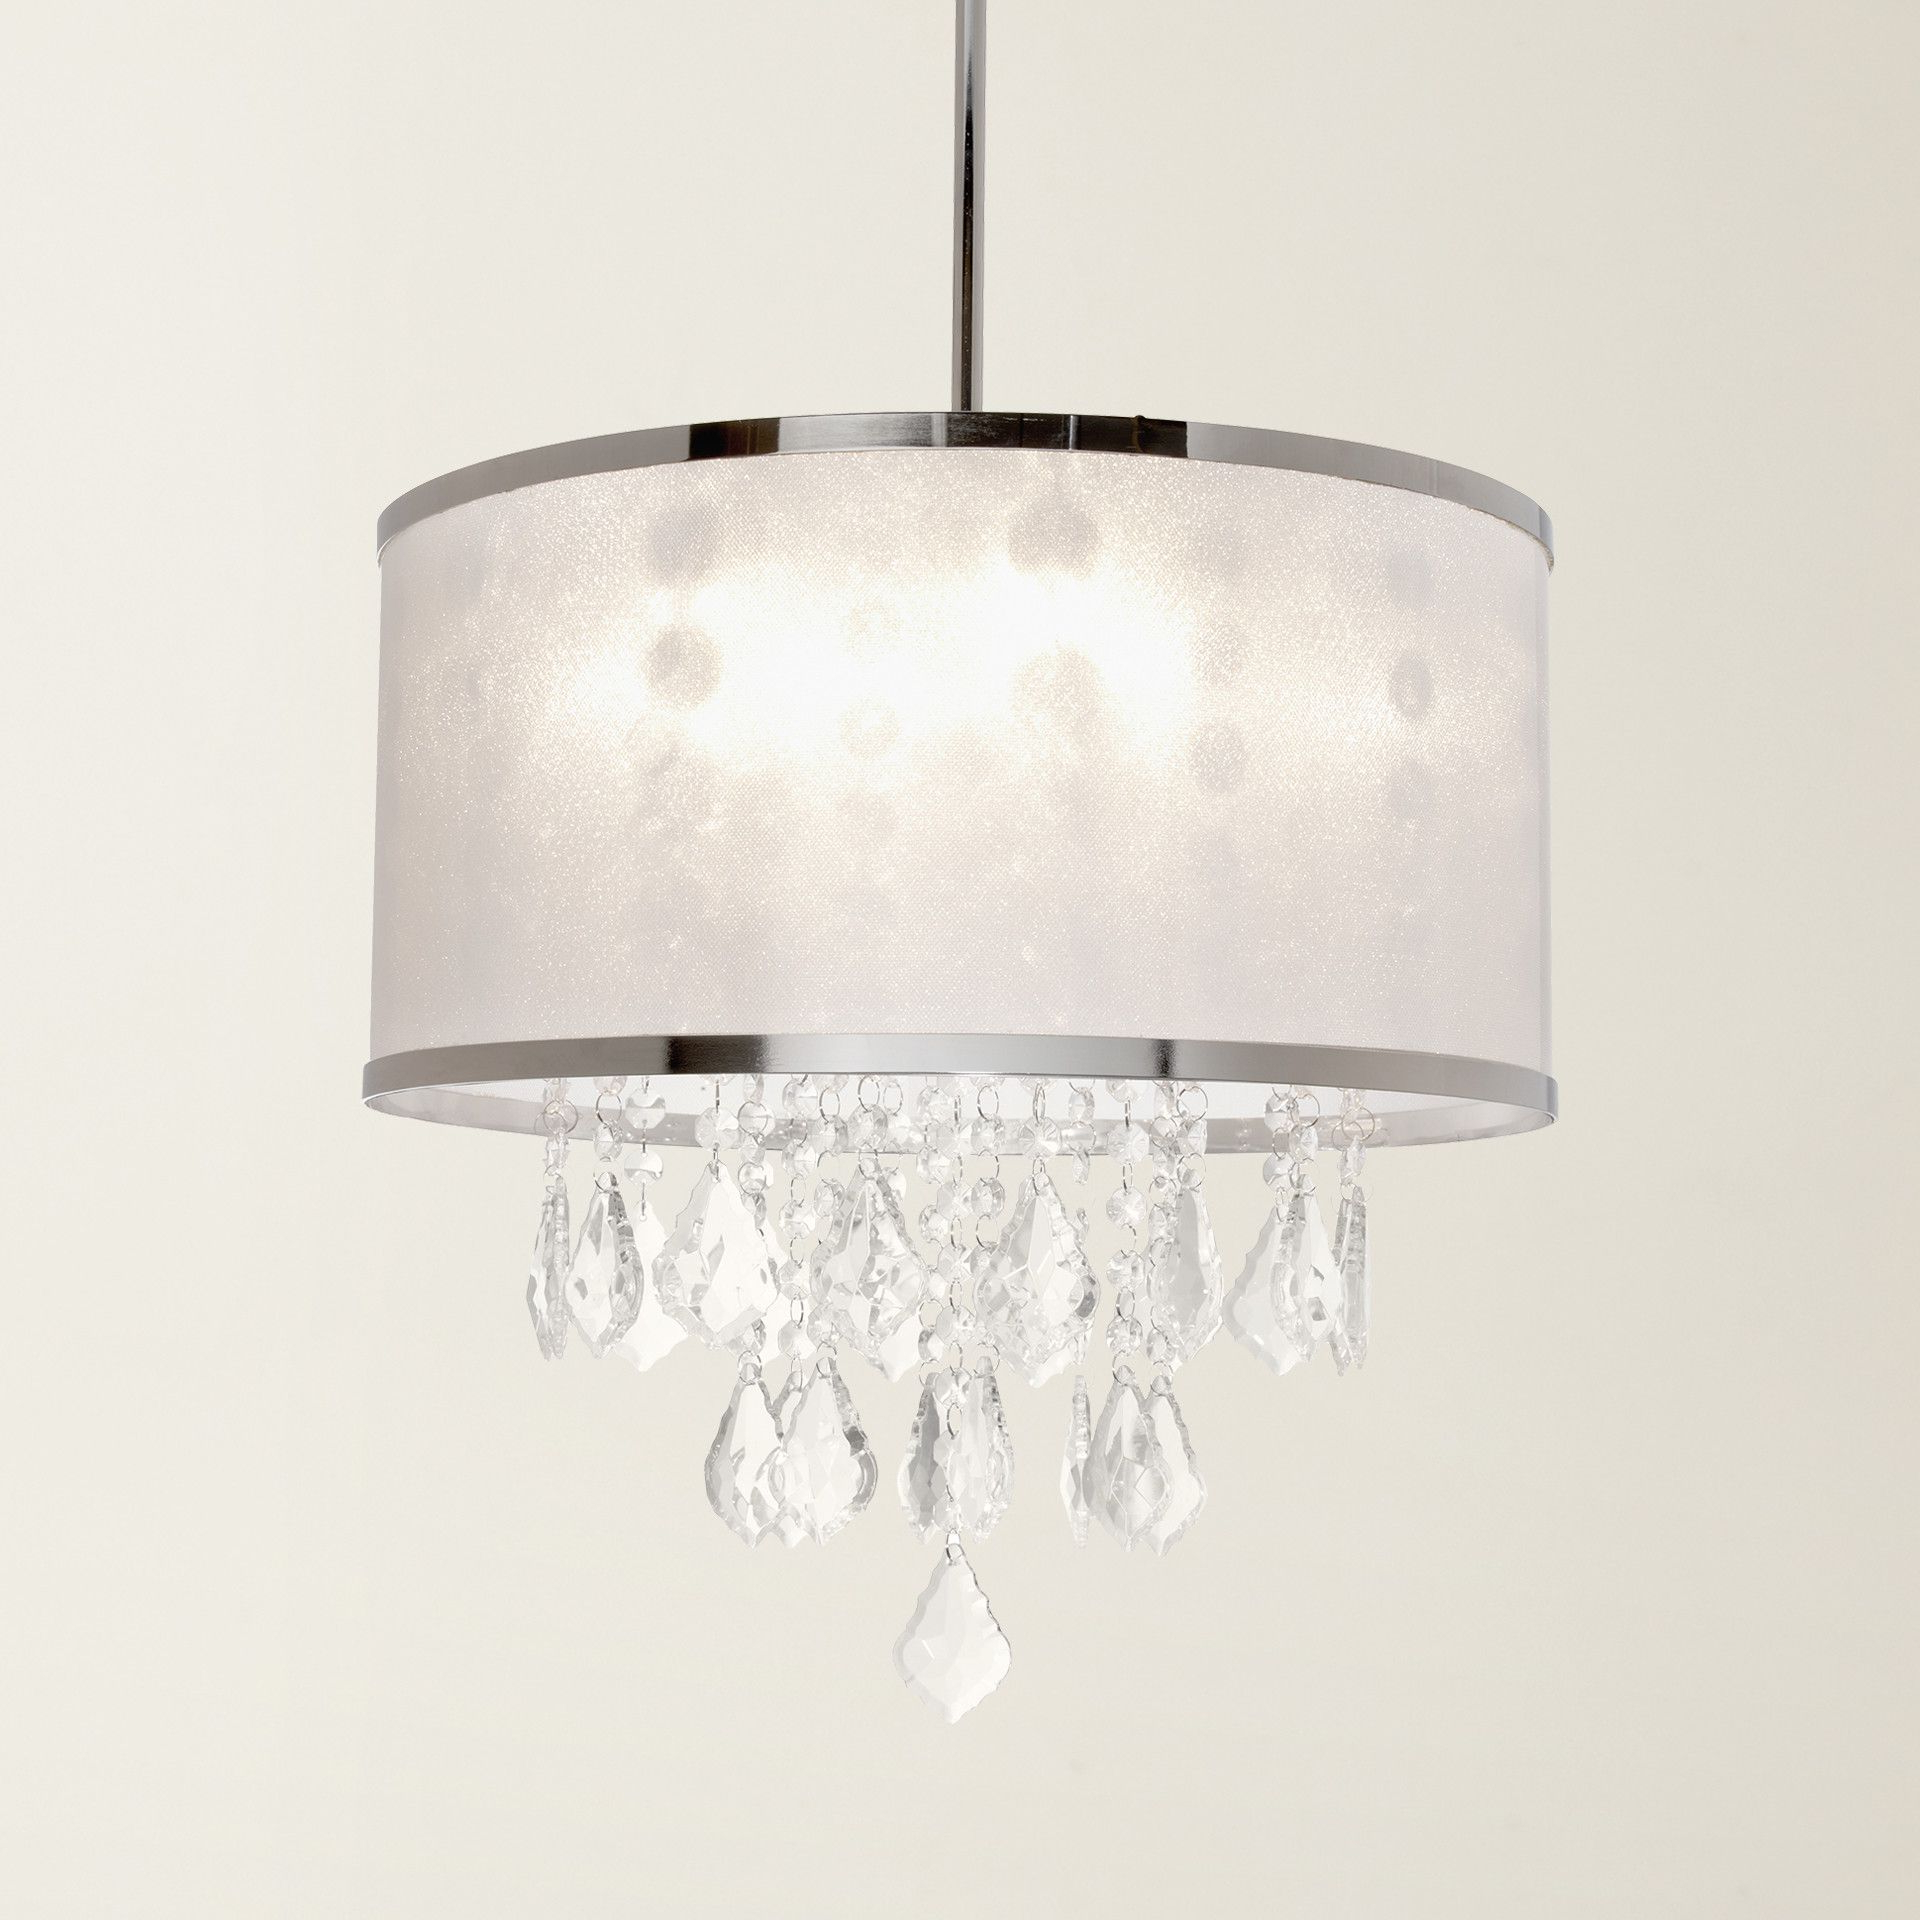 Famous House Of Hampton® Leibowitz 4 Light Drum Chandelier Throughout Lindsey 4 Light Drum Chandeliers (Gallery 2 of 20)